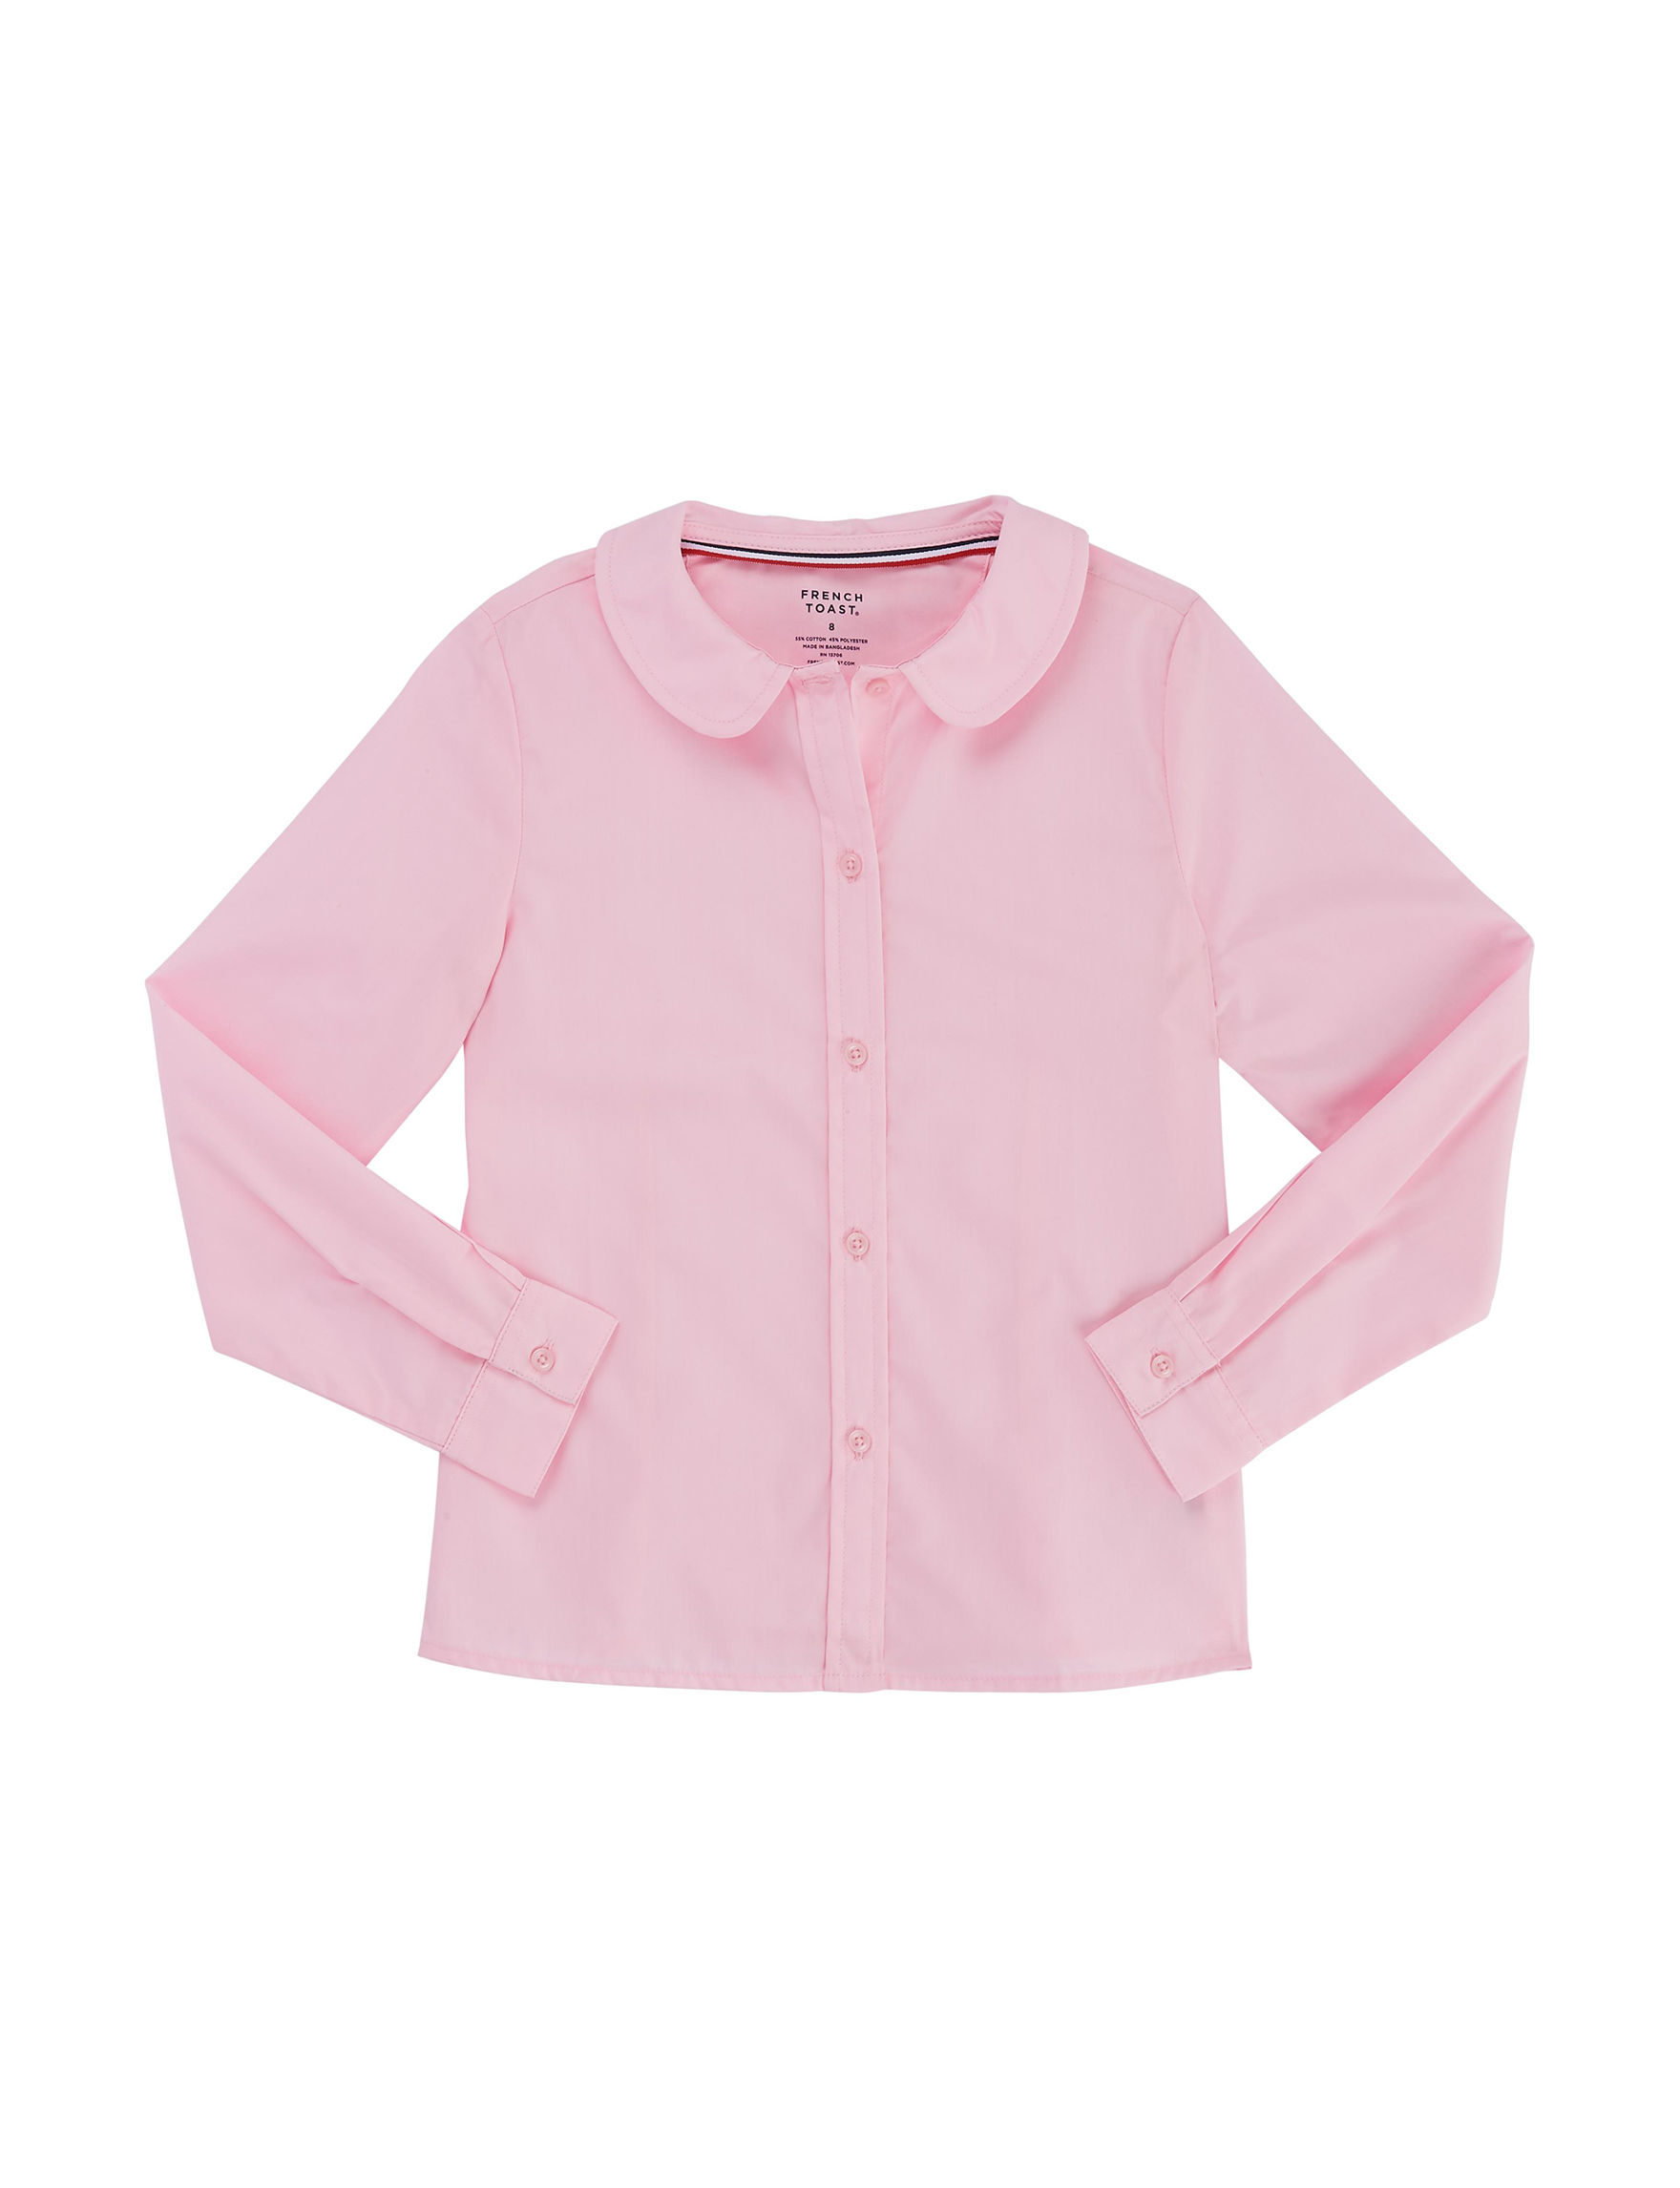 French Toast Pink Shirts & Blouses